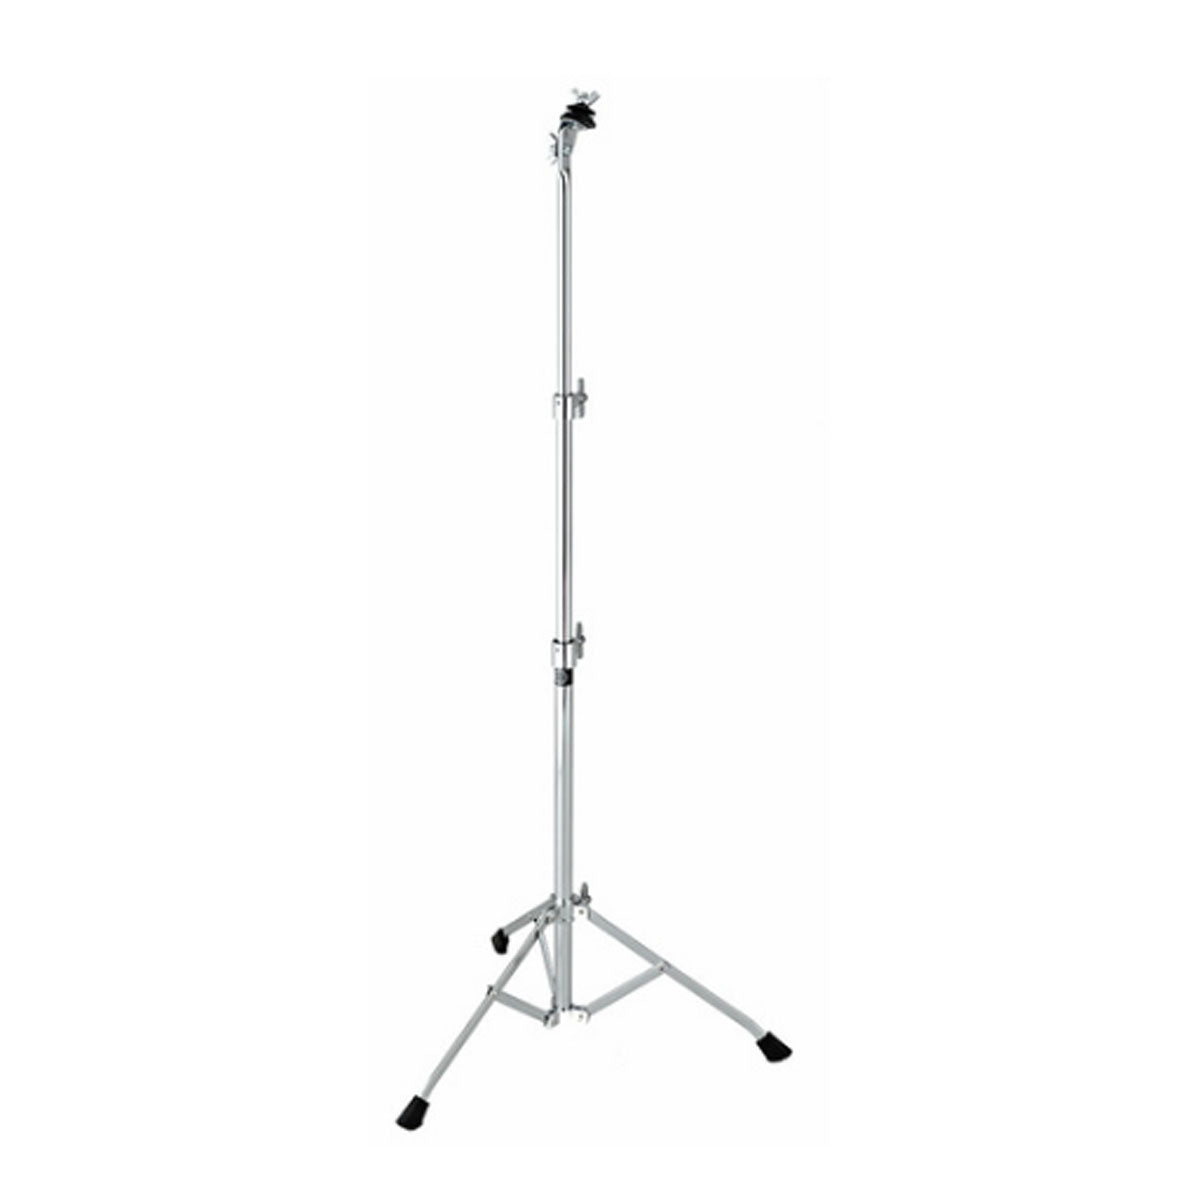 Dixon 9260 Series Straight Cymbal Stand Light-Weight Single Braced - PSY9260